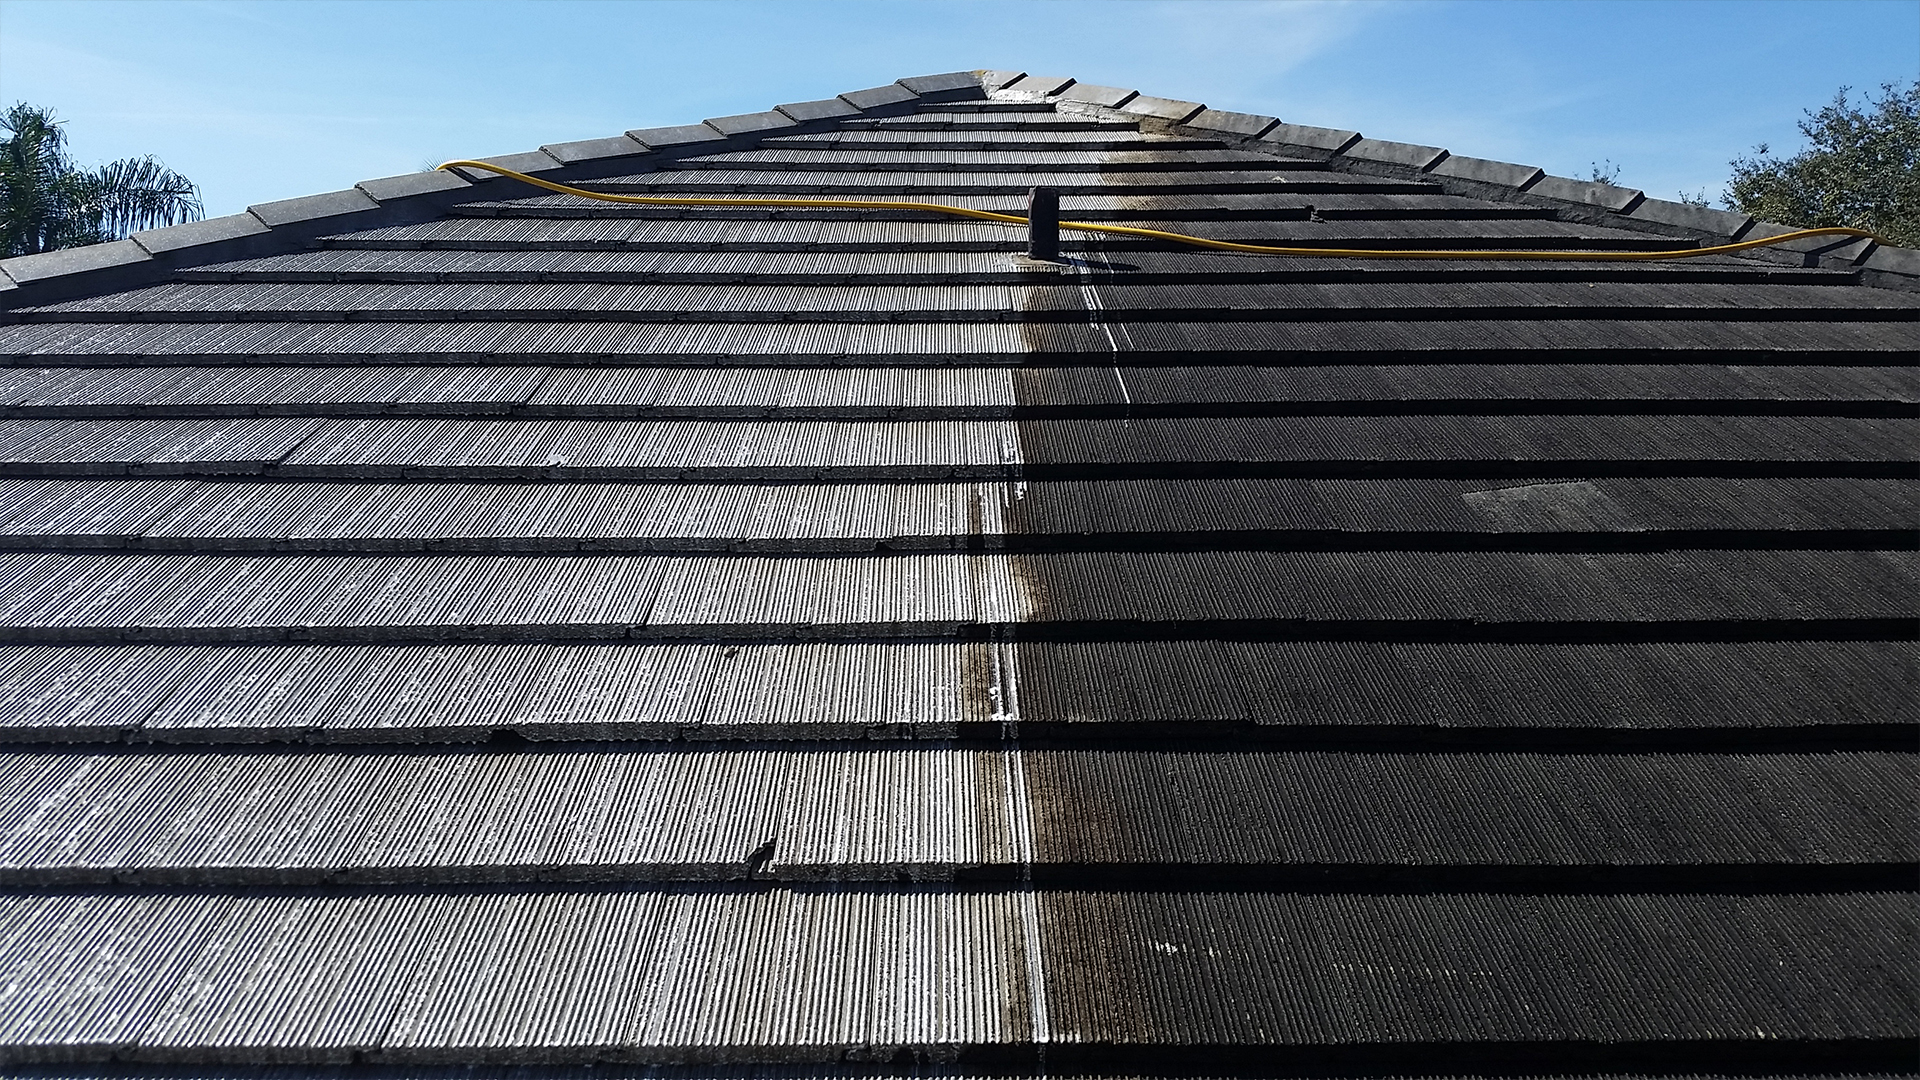 Chemical Roof Cleaning Pressure Cleaning Roof Cleaning